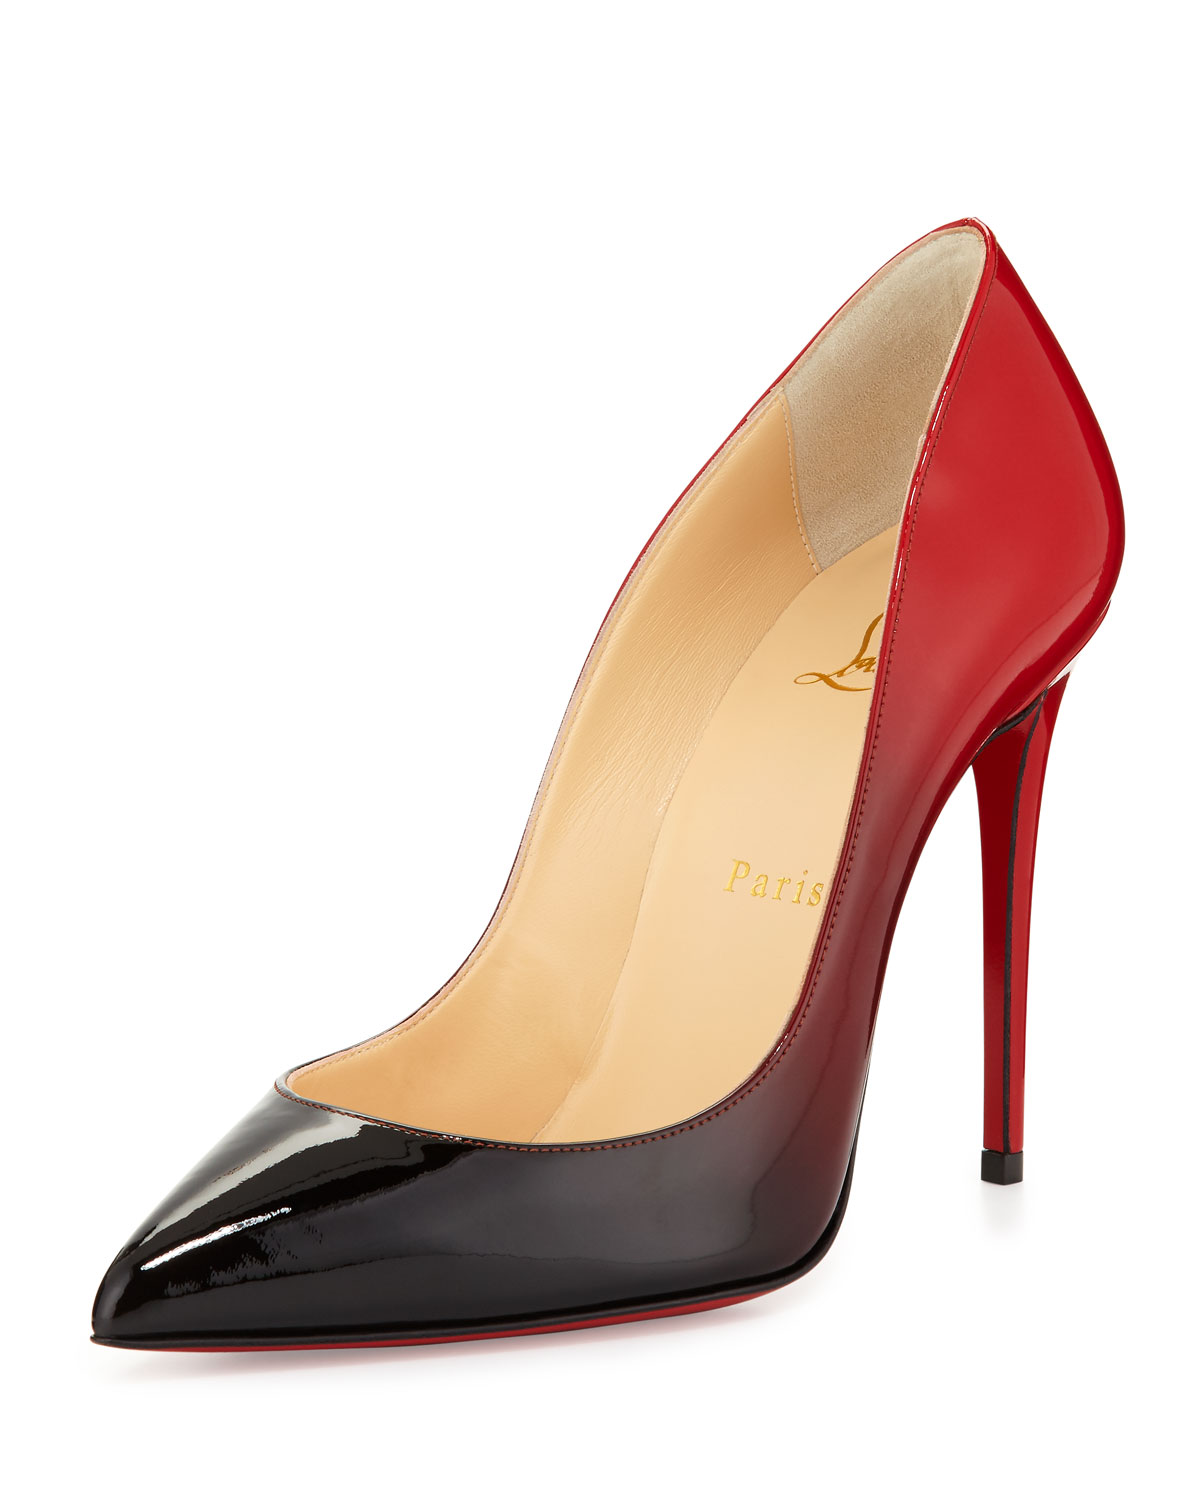 397579633b0 Pigalle Follies Degrade Red Sole Pump, Black/Red